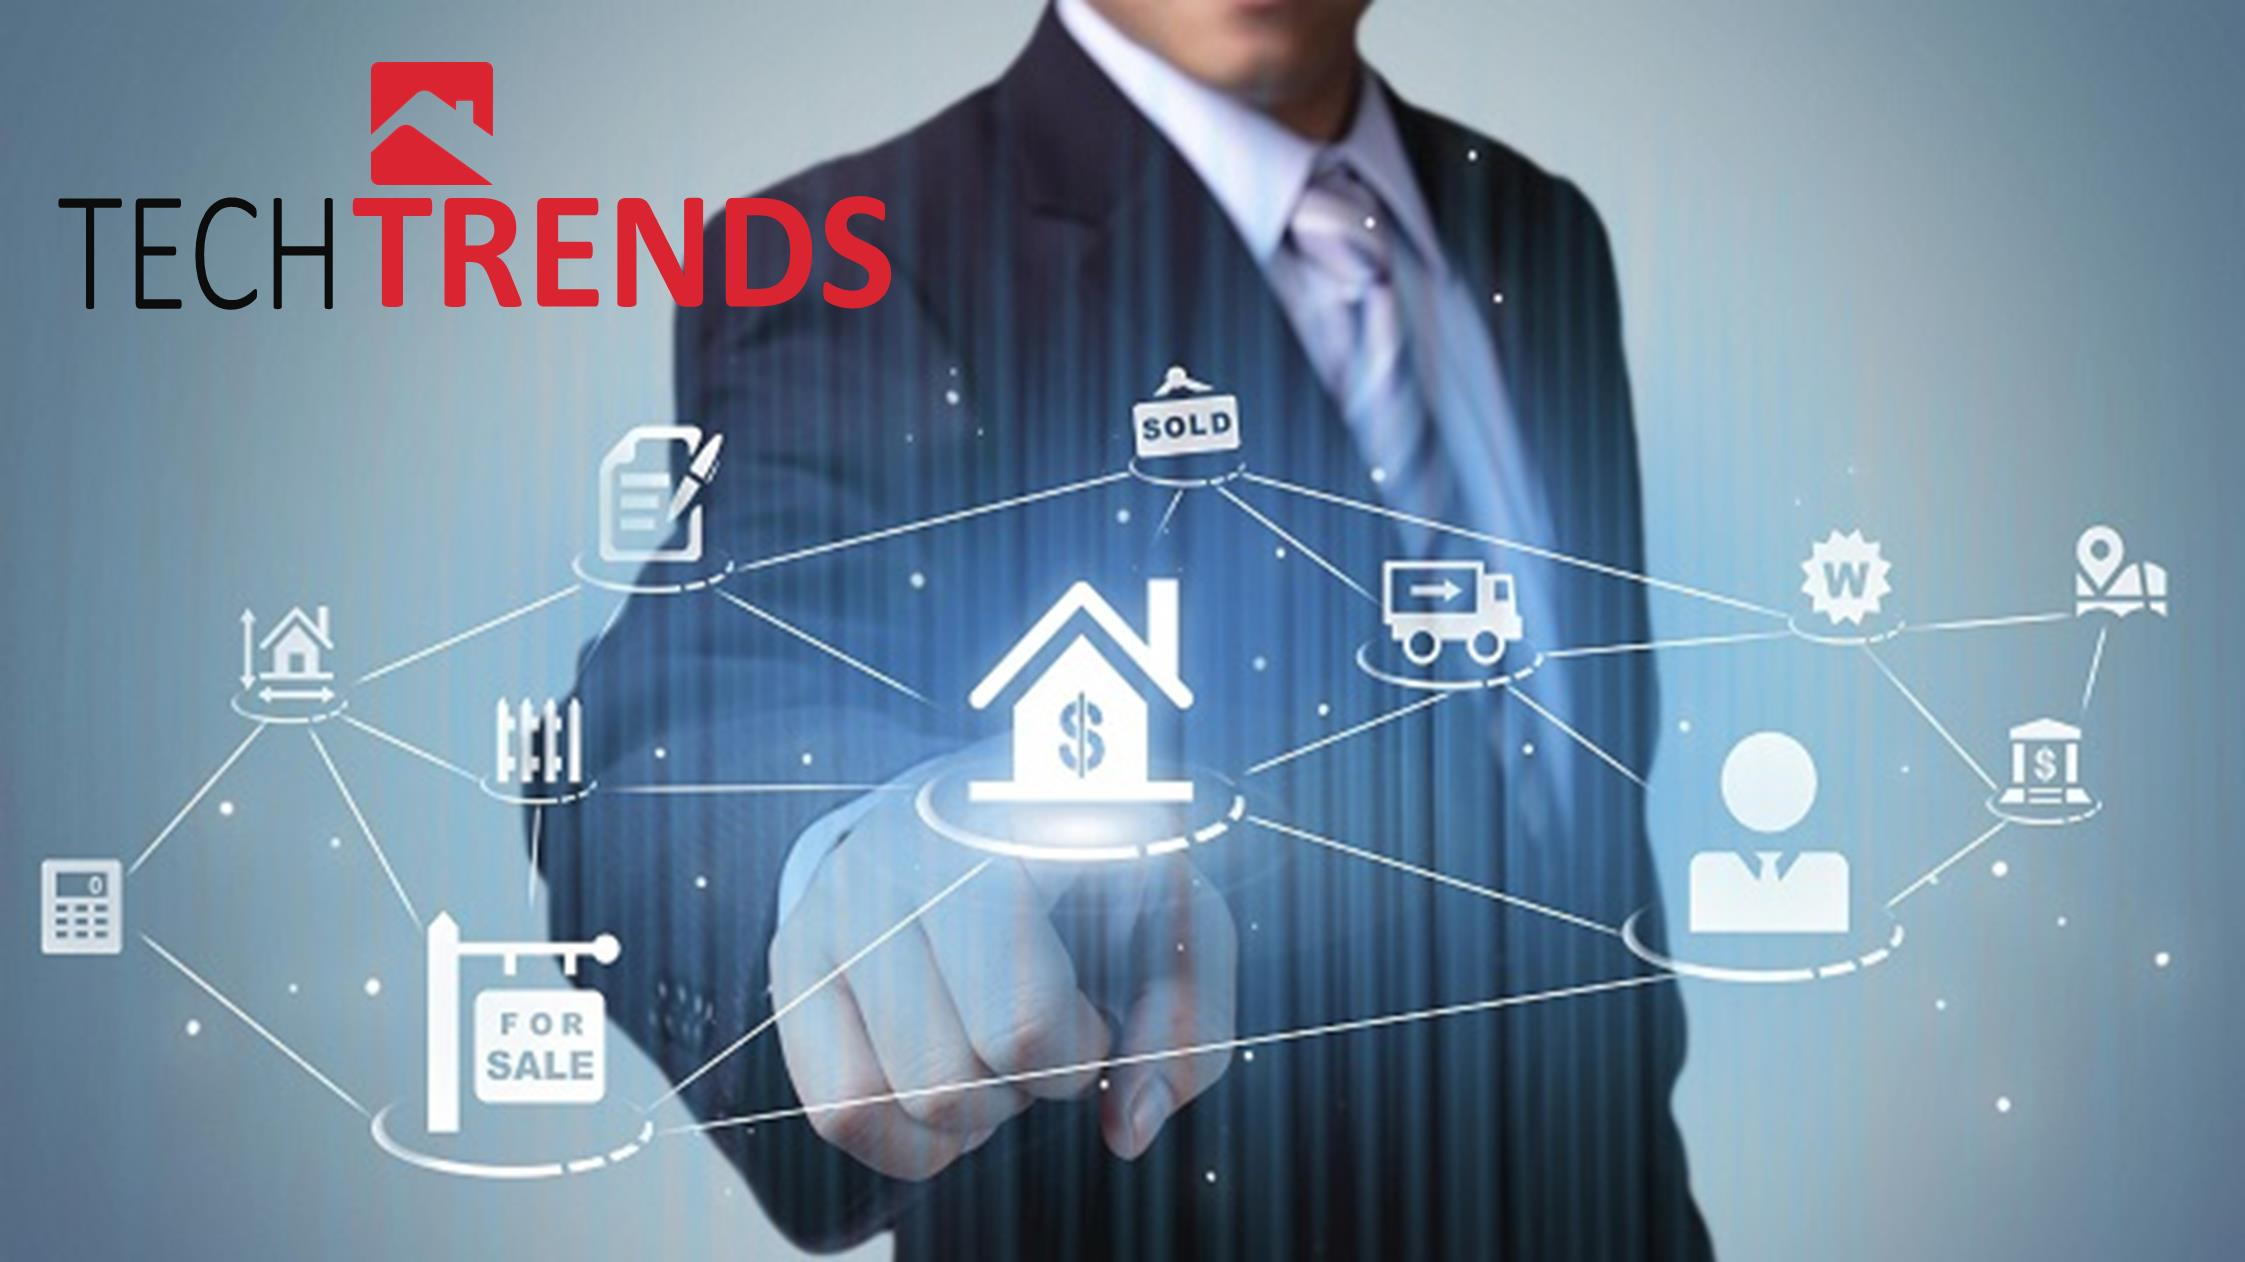 Tech Trends Discover the new real estate technology trends from IRES. We cover the latest real estate technology news on tools, tips, gadgets, conference, and more. If you have any technology you want to share, please let us know! 626-593-4225